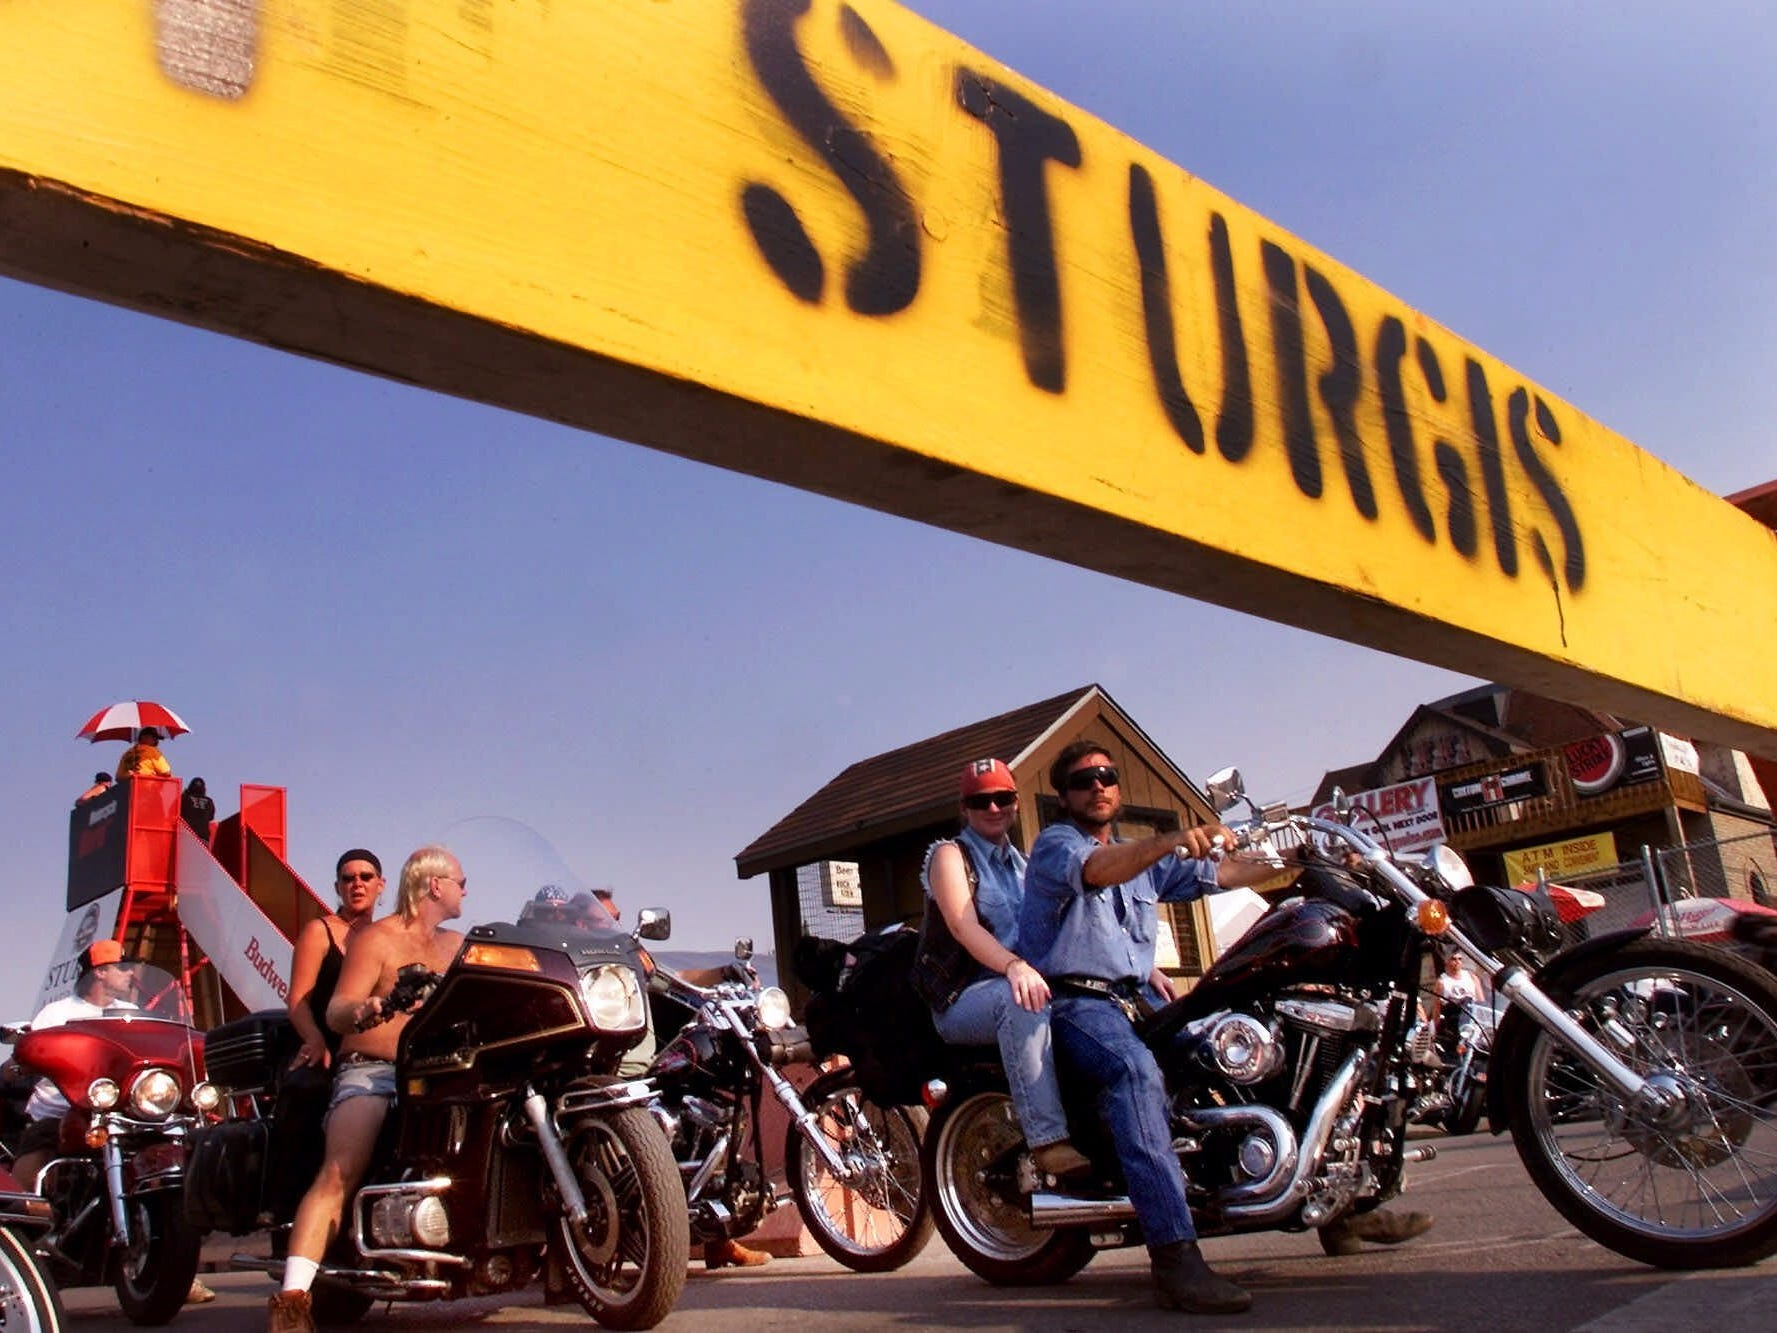 2000: Motorcycle riders ease their way along Main Street in Sturgis, S.D., on Aug. 8, 2000, for the second day of the Sturgis Motorcycle Rally. Hundreds of thousands of riders were expected in the Black Hills area for the 60th annual rally.